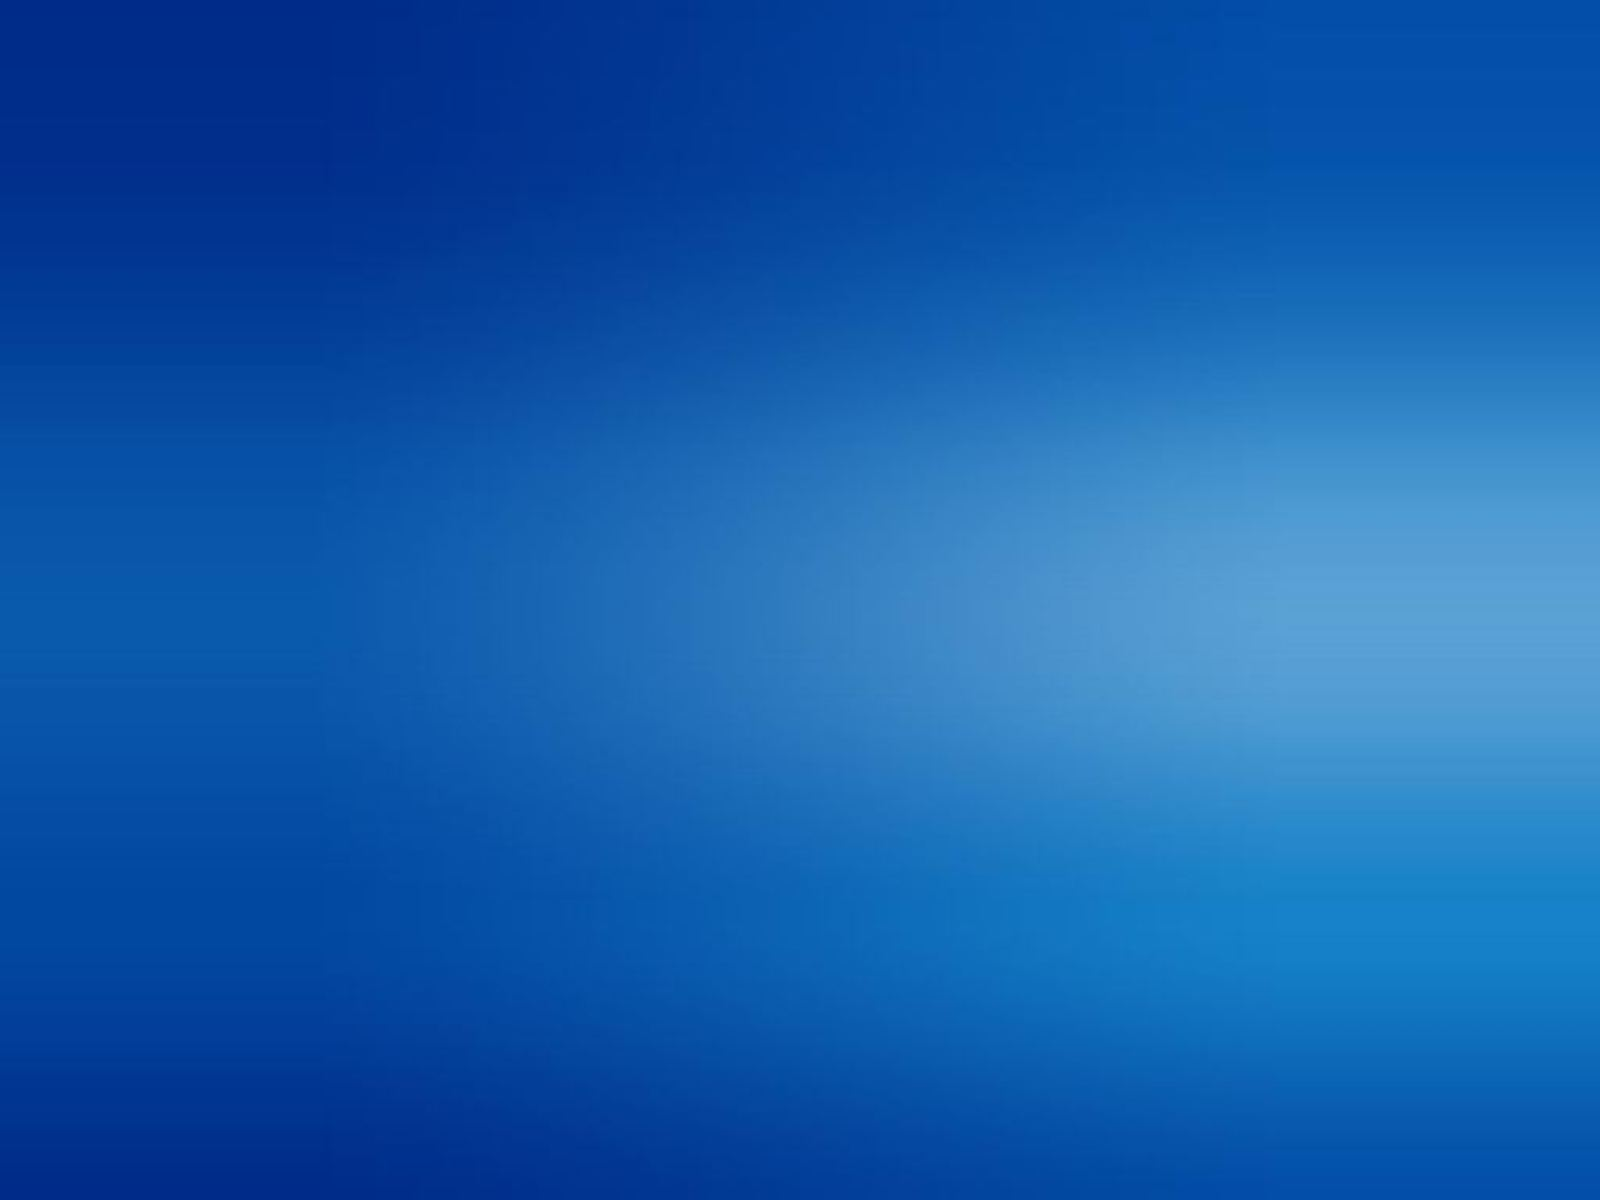 Plain Blue Wallpaper